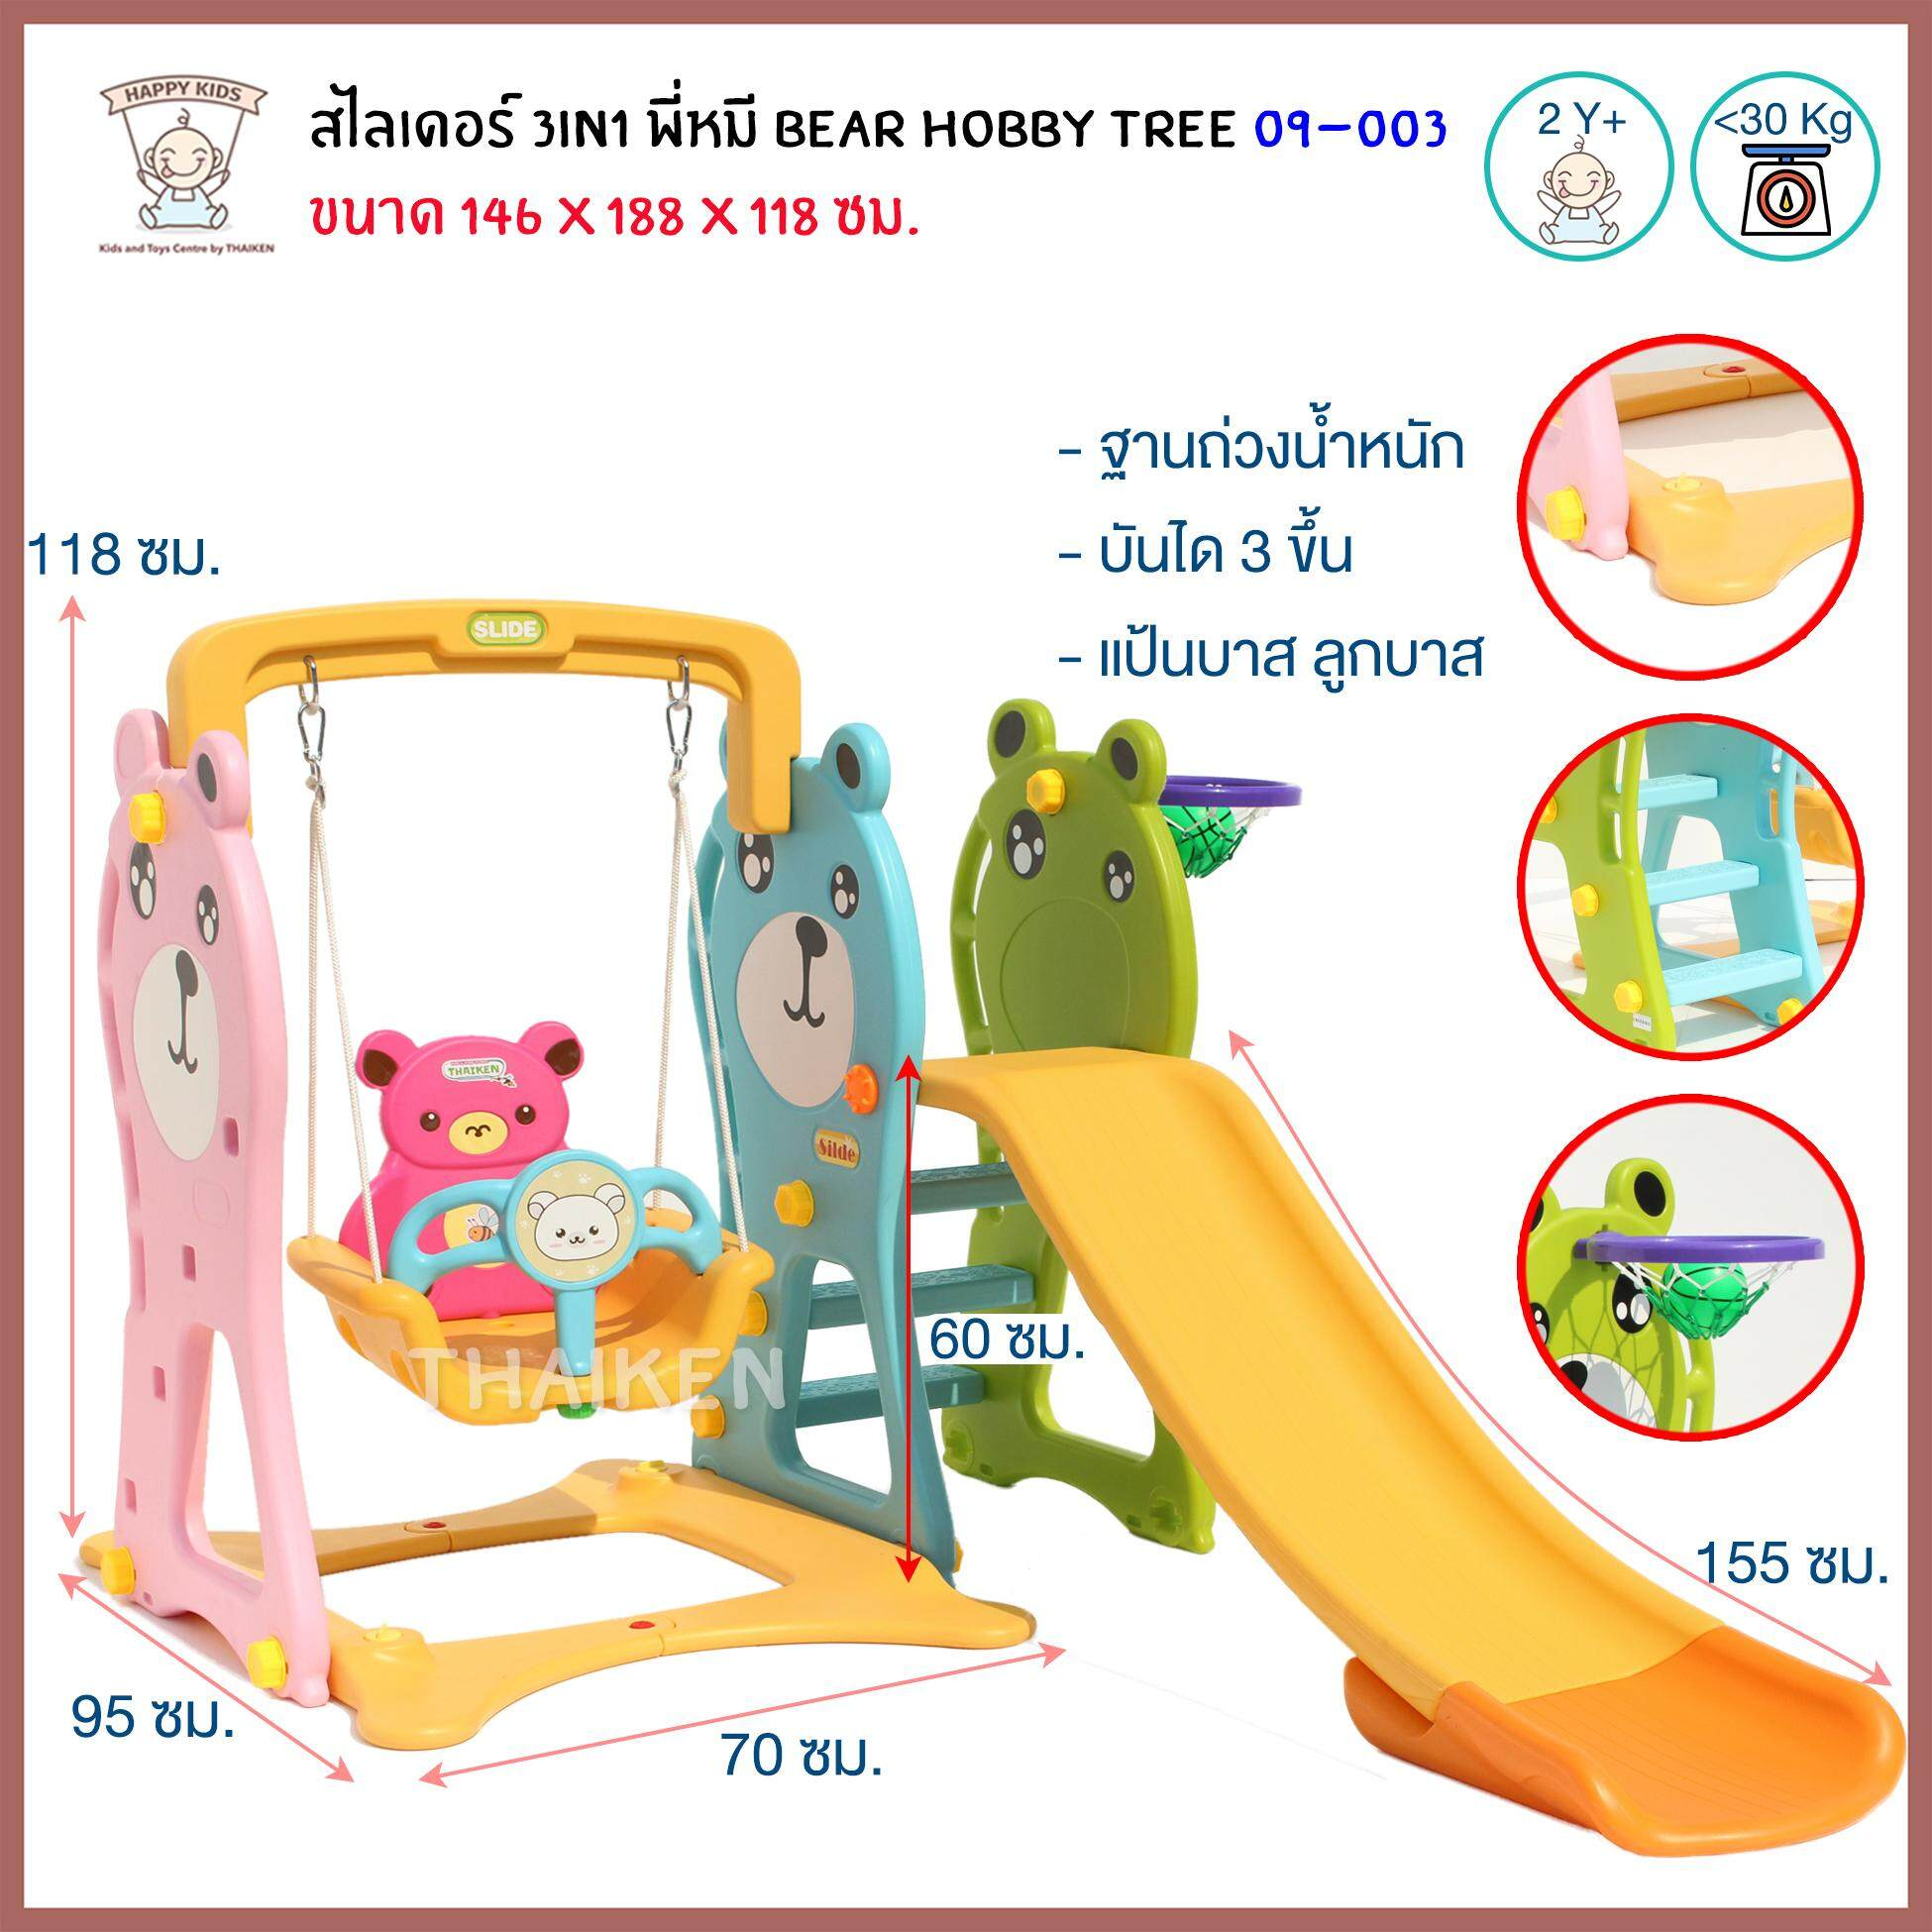 Thaiken สไลเดอร์ 3in1 พี่หมี Bear Hobby Tree Slide And Swing Set 09-003 By Thaiken.